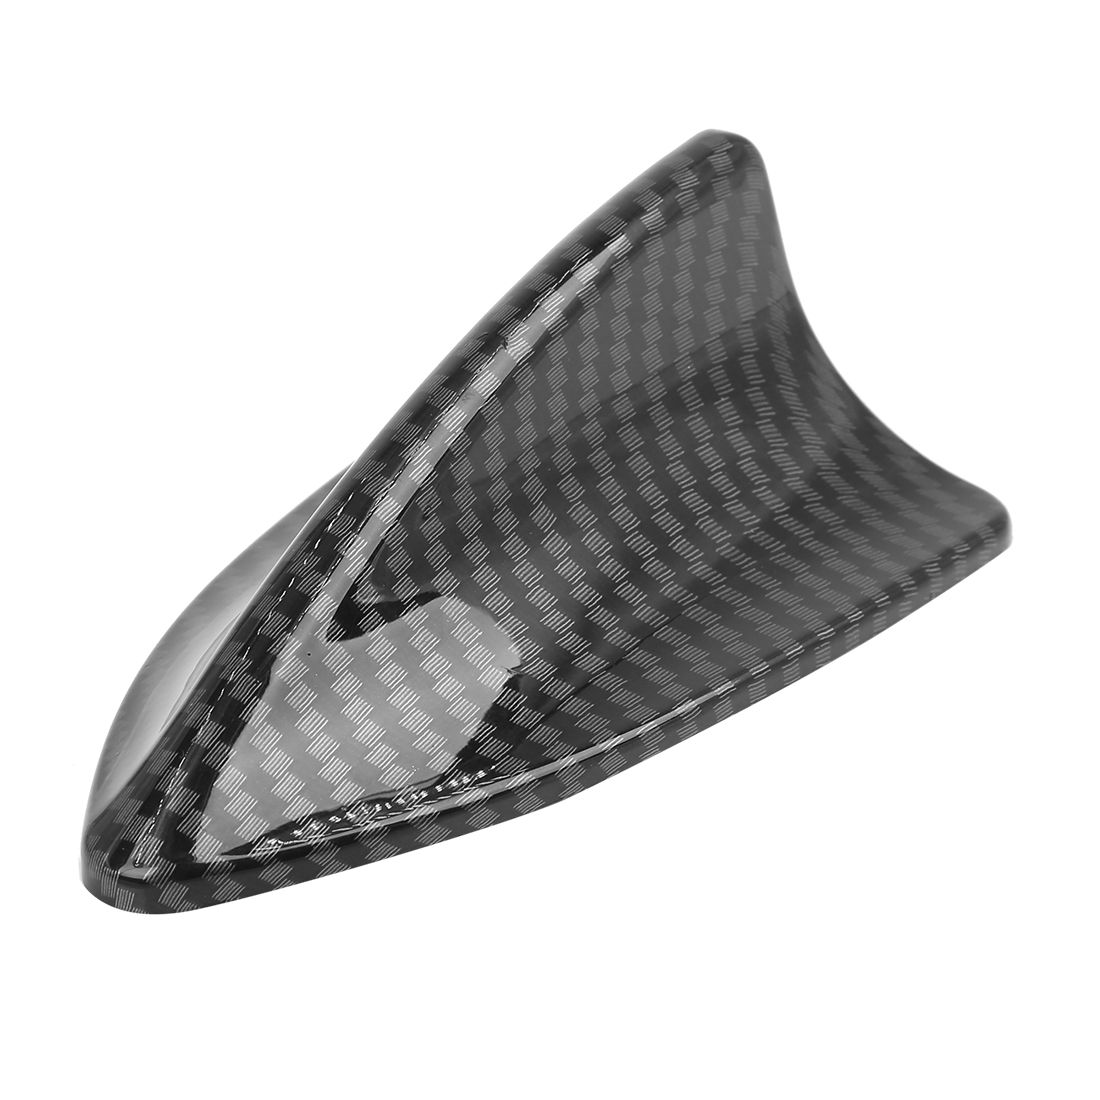 Auto Car Decoration Antenna Shark Fin Shaped Carbon Fiber Pattern 6cm Height